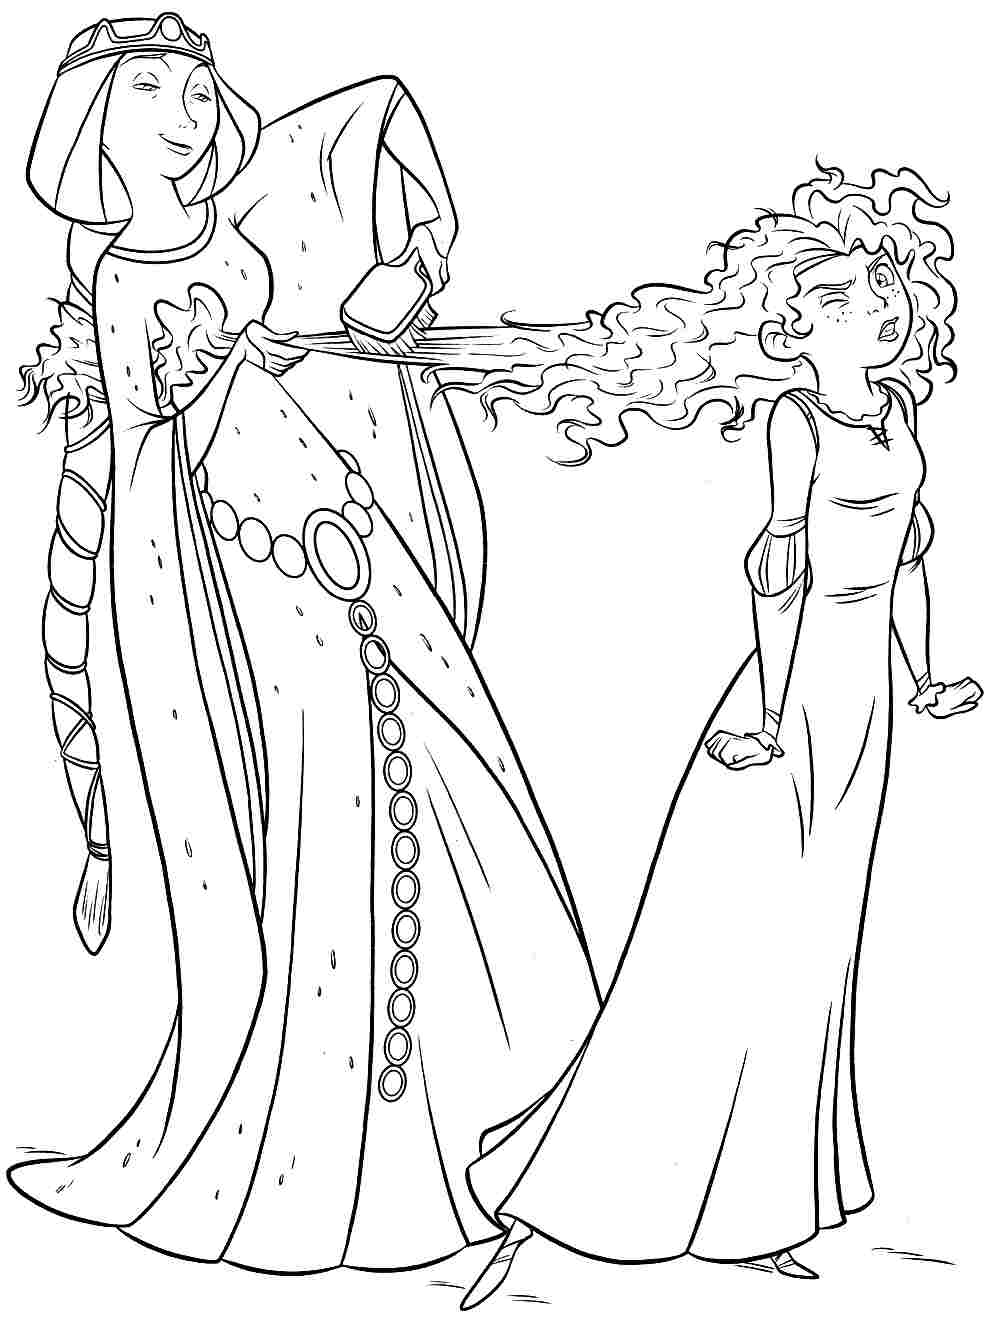 Free disney brave coloring pages printabel for Coloring pages merida